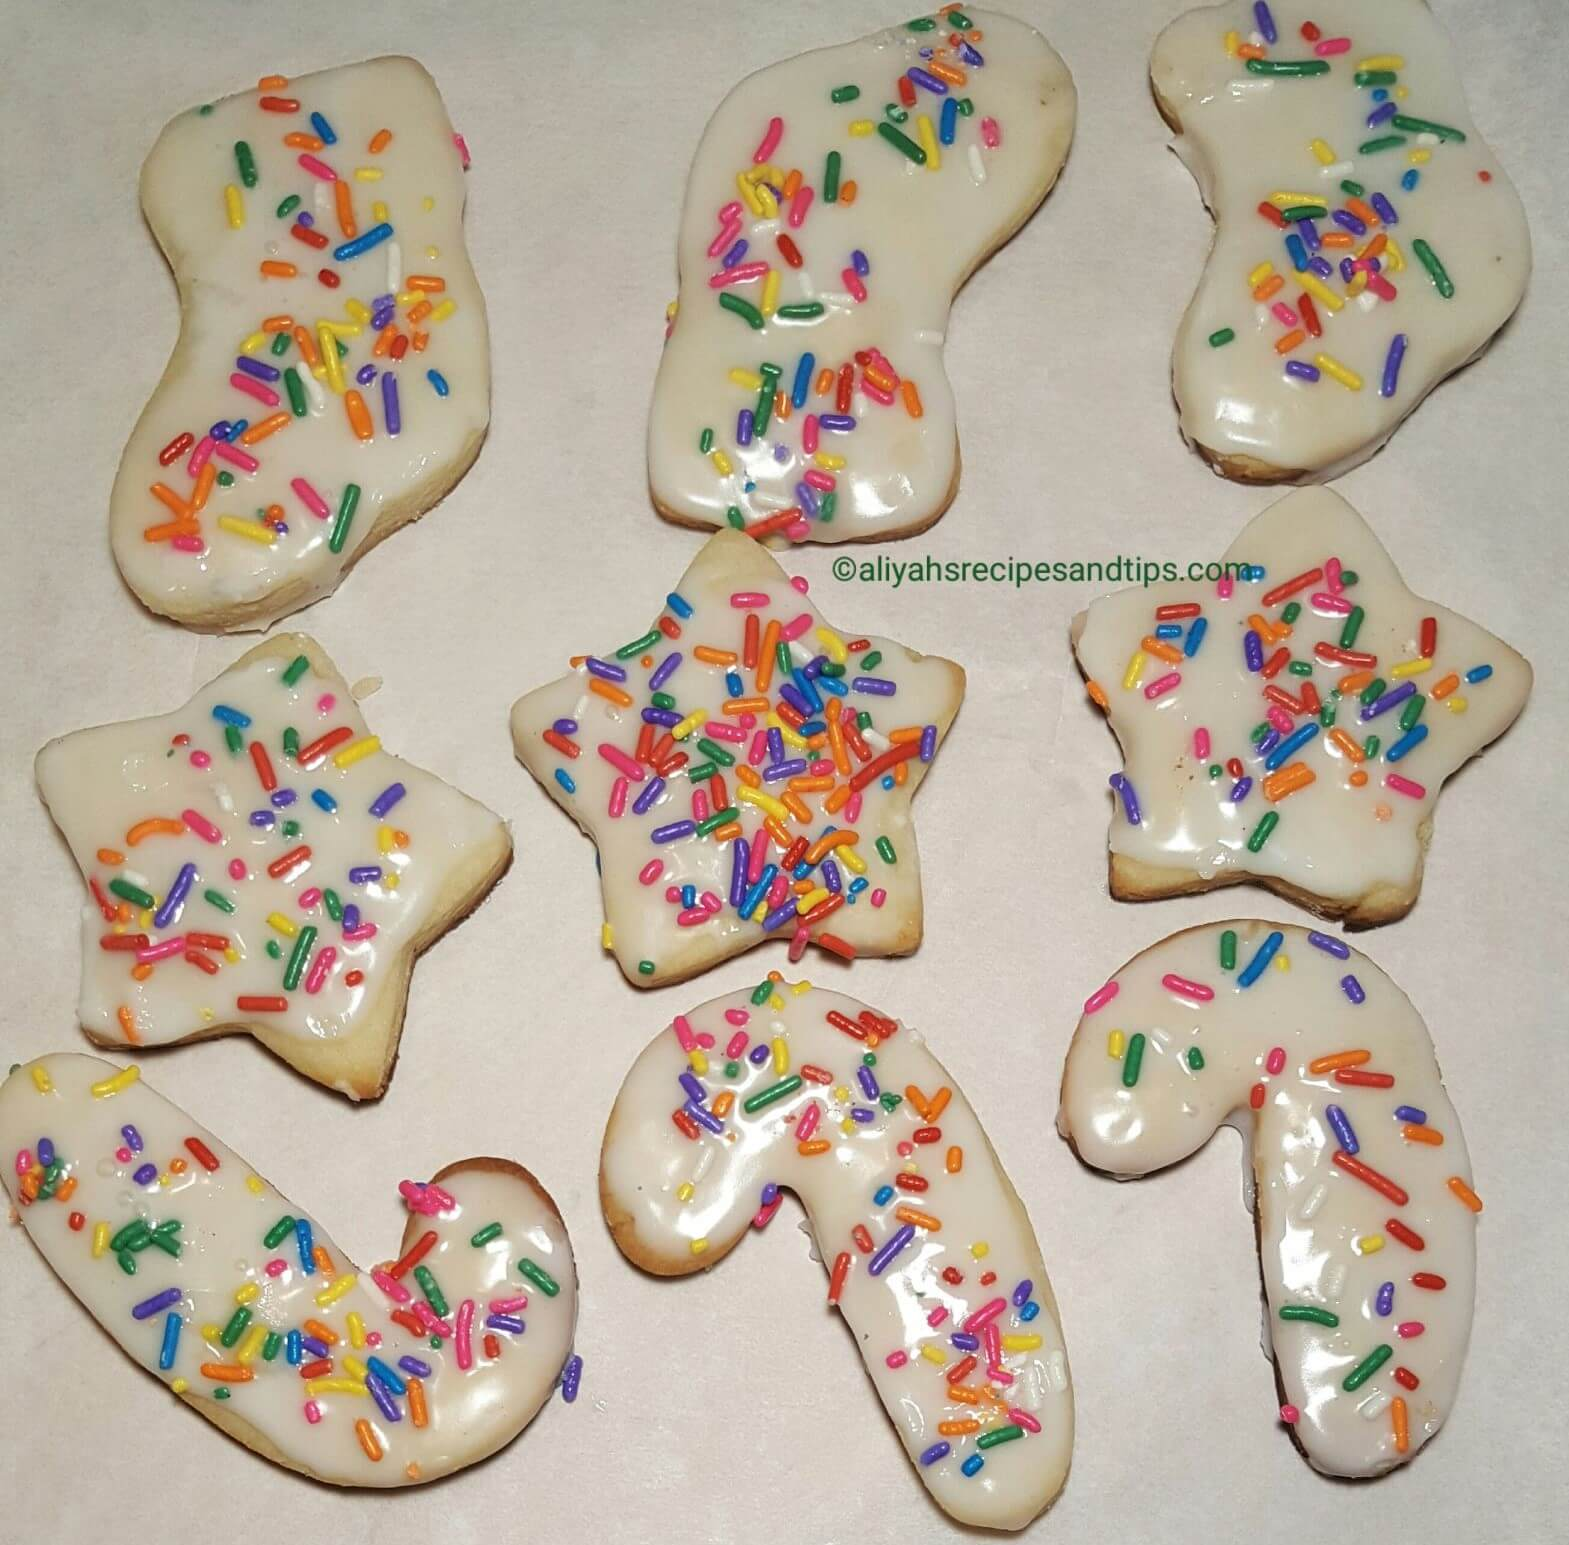 sugar cookies, easy sugar cookies, Sugar cookies with icing, best sugar cookies, soft and chewy froested sugar cookies,snowman cookies, soft christmas cut out sugar cookies, sugar cookies recipe, Christmas cookies,flower, easter, holiday, new year, American cookies, birthday, grocery store, store bought, lofthouse, cookies, Christmas, pink, Icing, Wedding, Dessert, Decorated, plain cookies, royal icing,